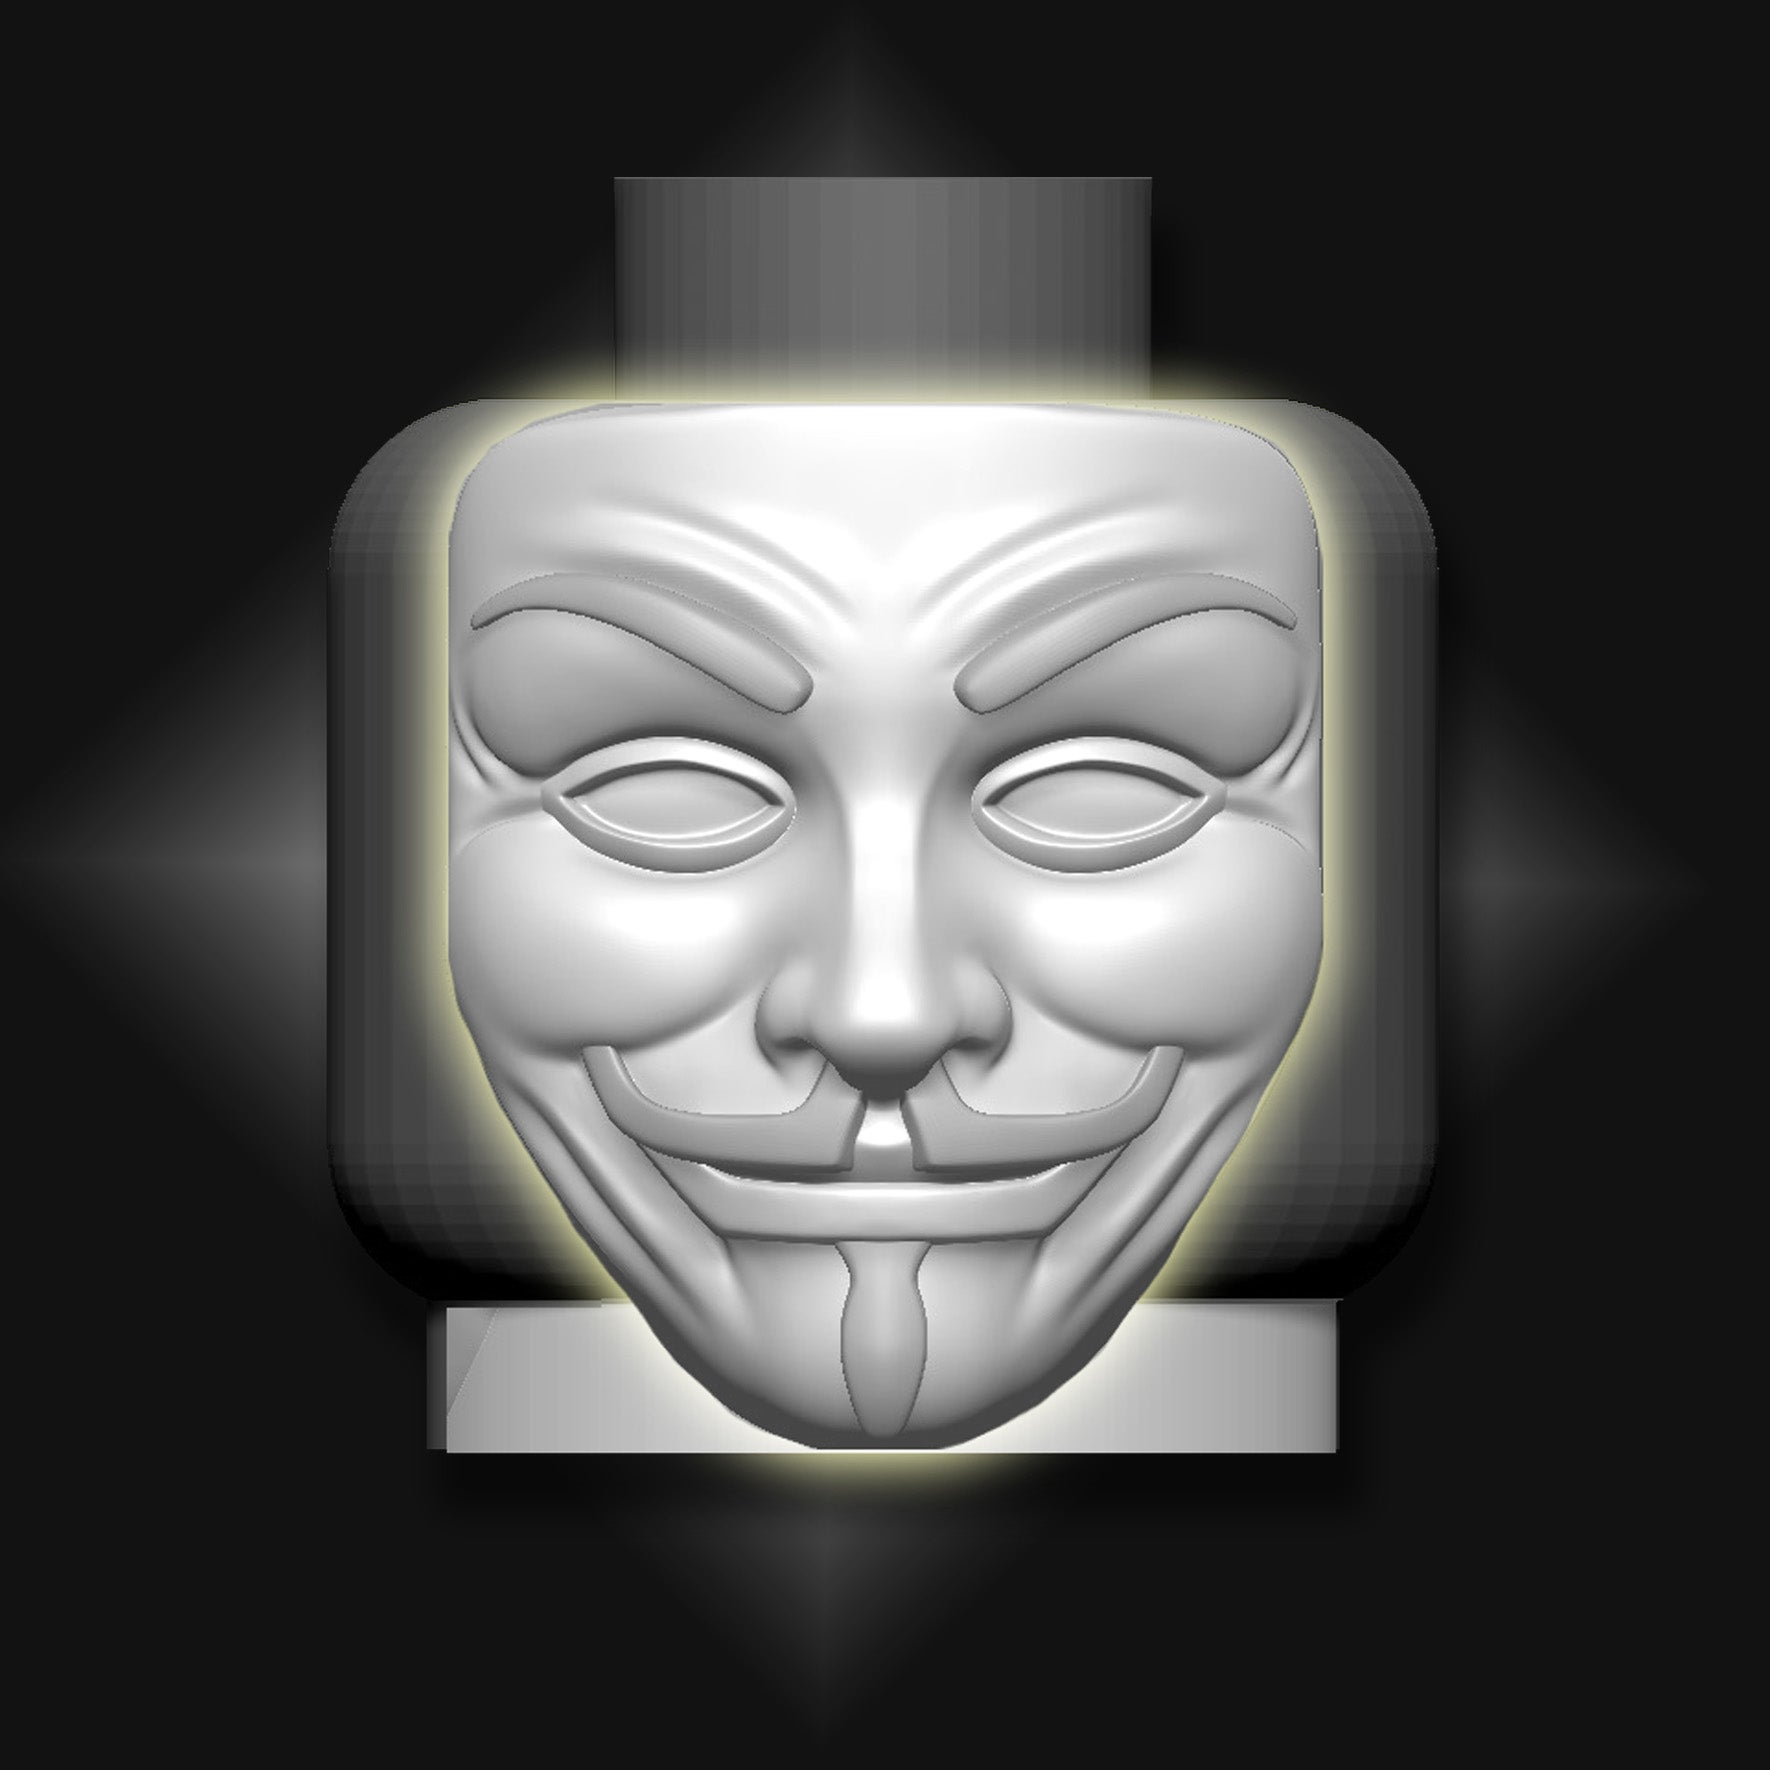 Because Anonymous Has No Leadership No Action Can Be Attributed To The Membership As A Whole Parmy Olson And Others Have Criticized Media Coverage That Presents The